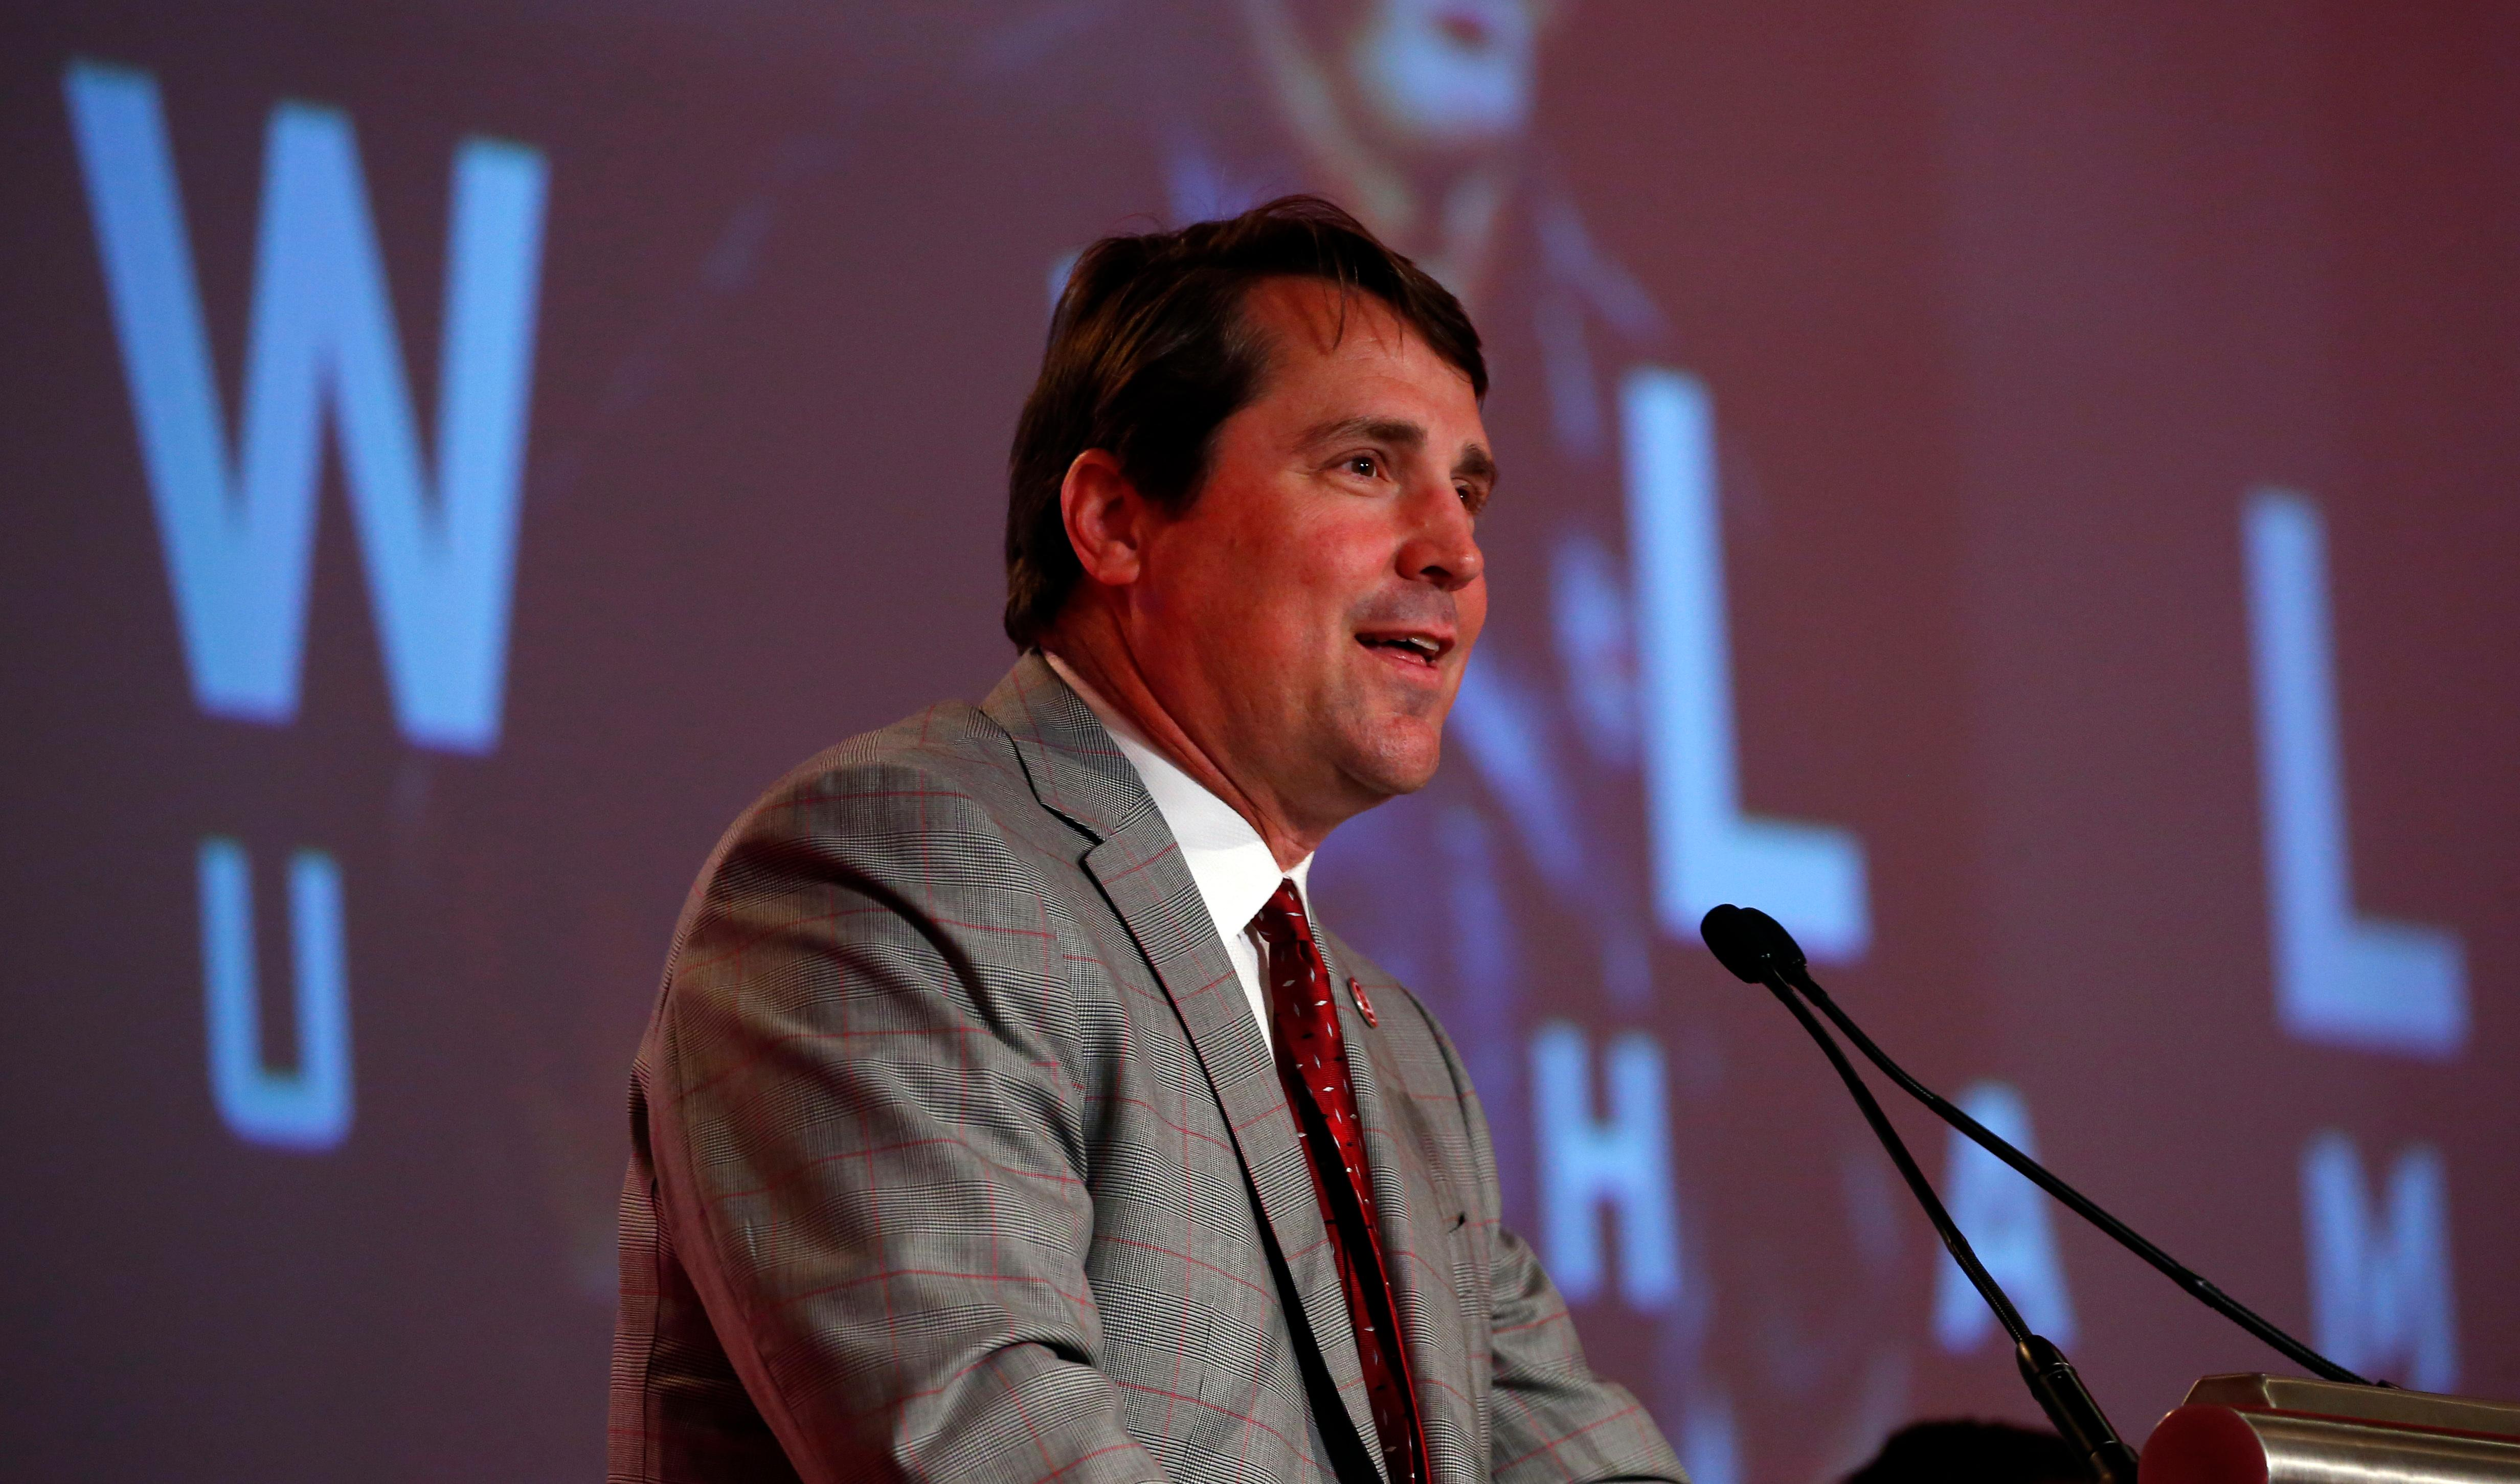 South Carolina NCAA college football coach Will Muschamp speaks during the Southeastern Conference's annual media gathering, Thursday, July 13, 2017, in Hoover, Ala. (AP Photo/Butch Dill)